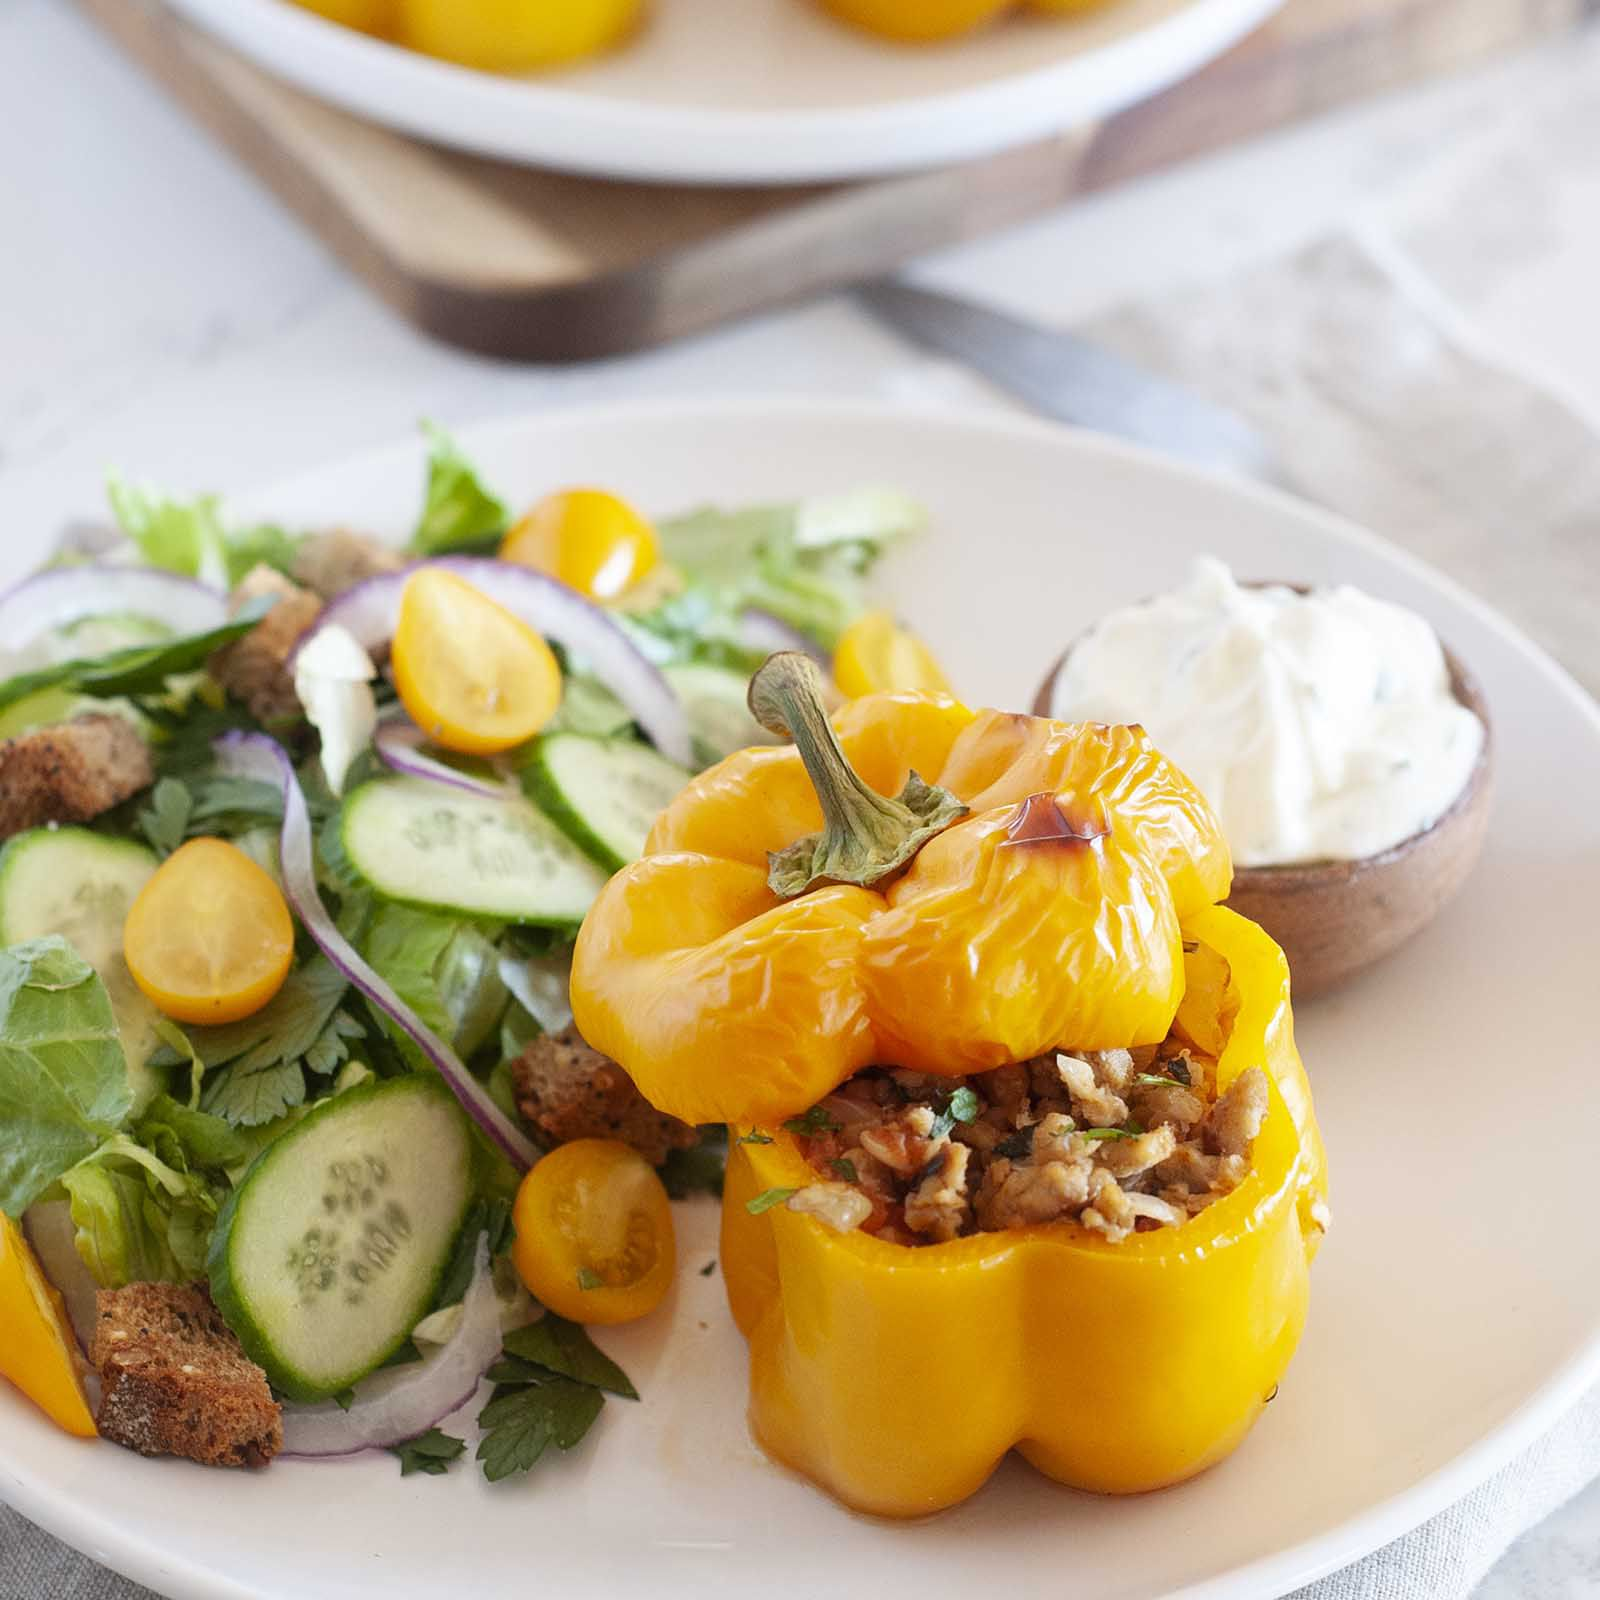 Healthy stuffed pepper with chicken is on a plate with the top askew to reveal the ground chicken filling. A yogurt sauce and garden salad are on the plate as well. Additional peppers are behind the plate.